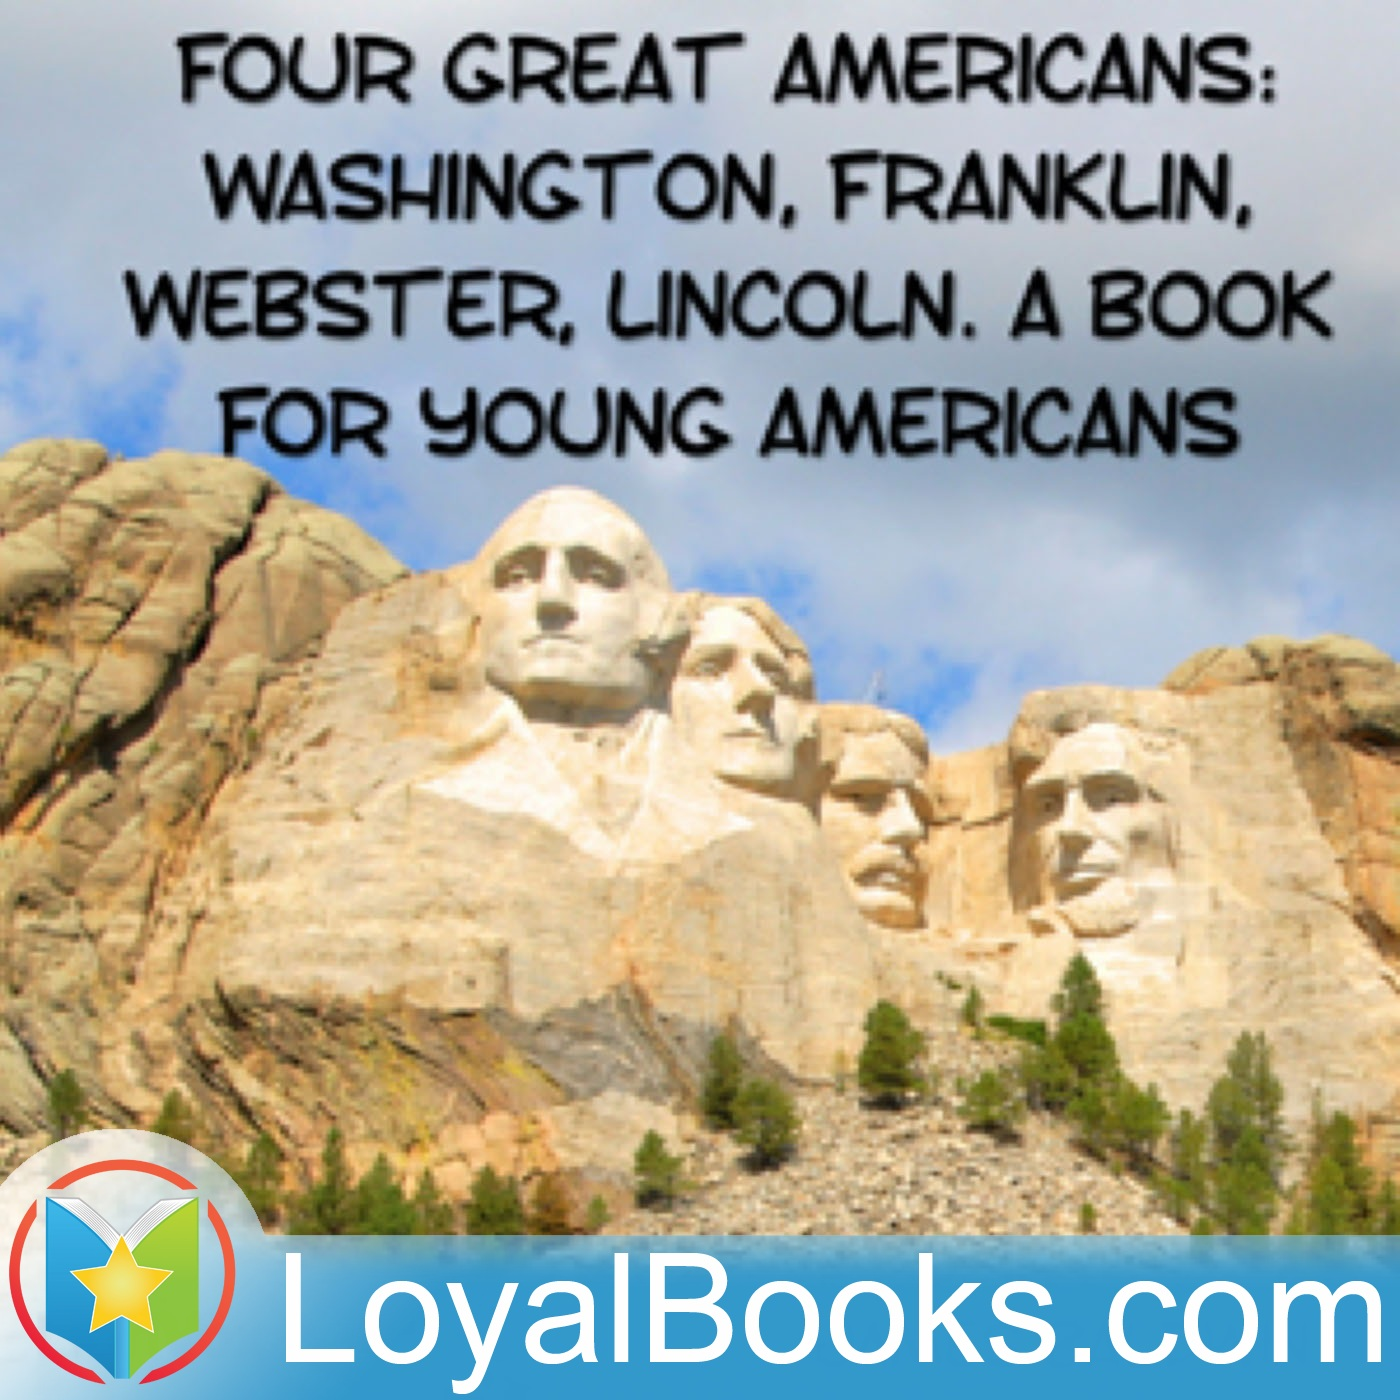 Four Great Americans: Washington, Franklin, Webster, Lincoln. A Book for Young Americans by James Baldwin  